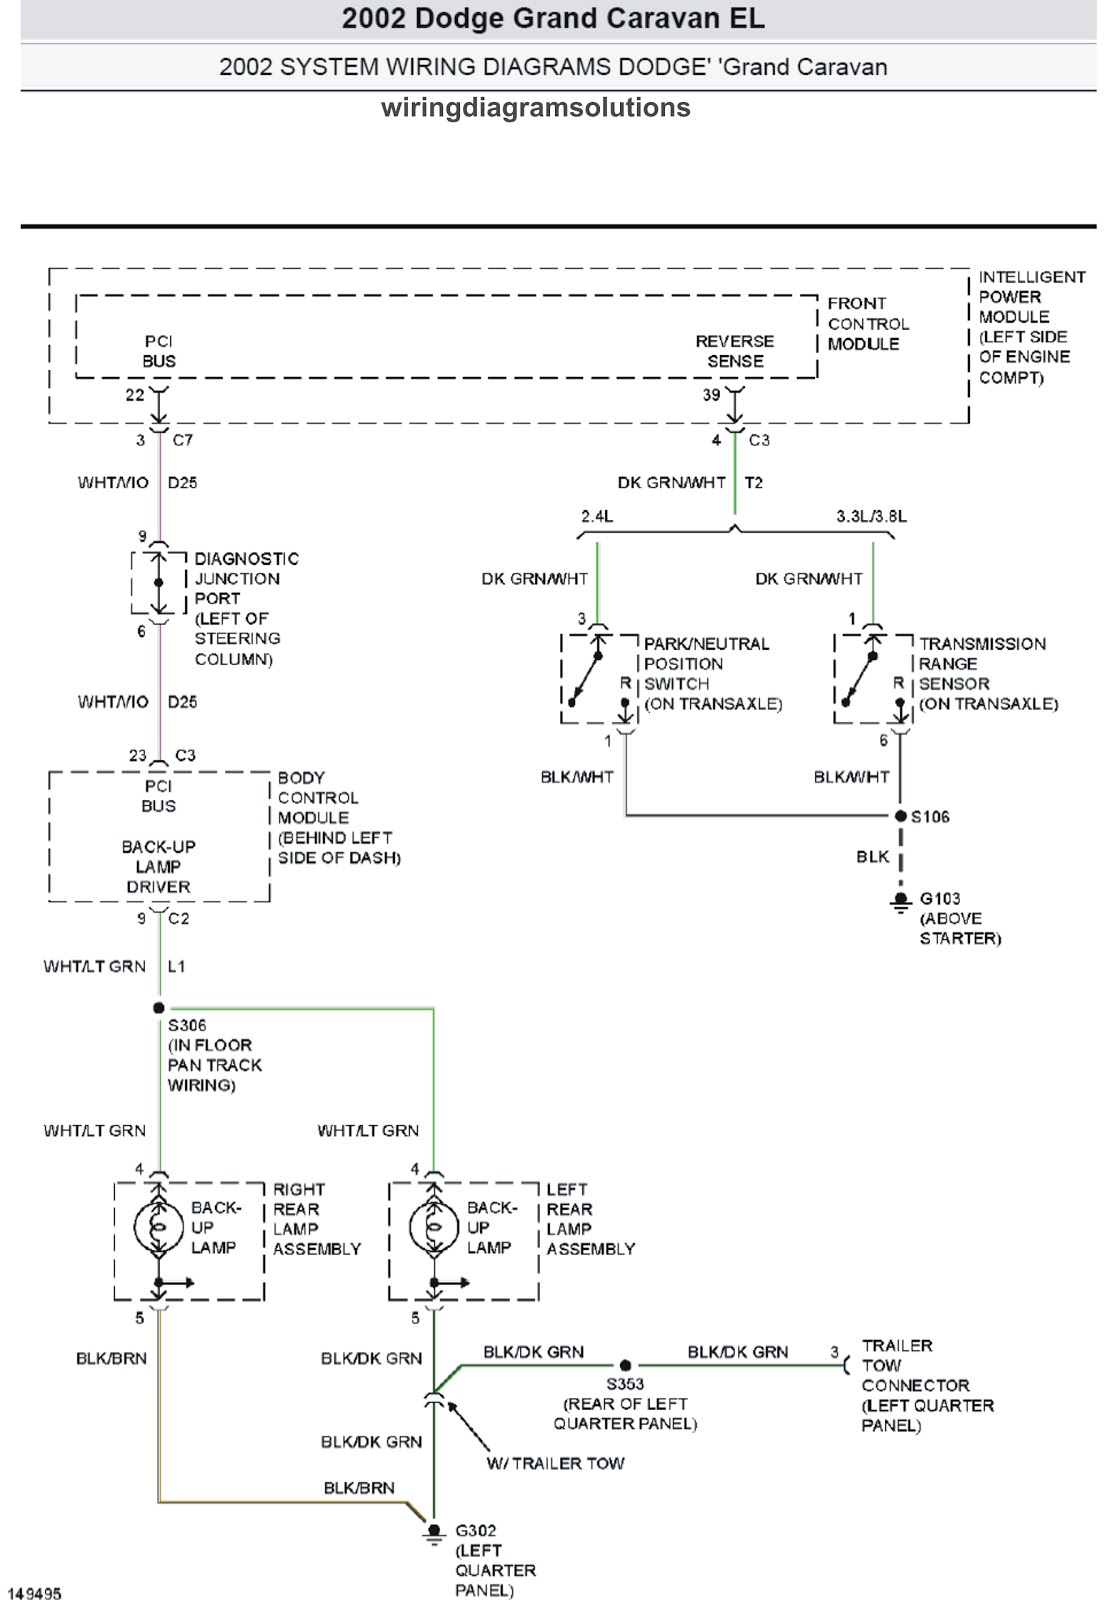 hight resolution of may 2011 schematic wiring diagrams solutions 02 dodge caravan wiring diagram 2003 dodge grand caravan wiring